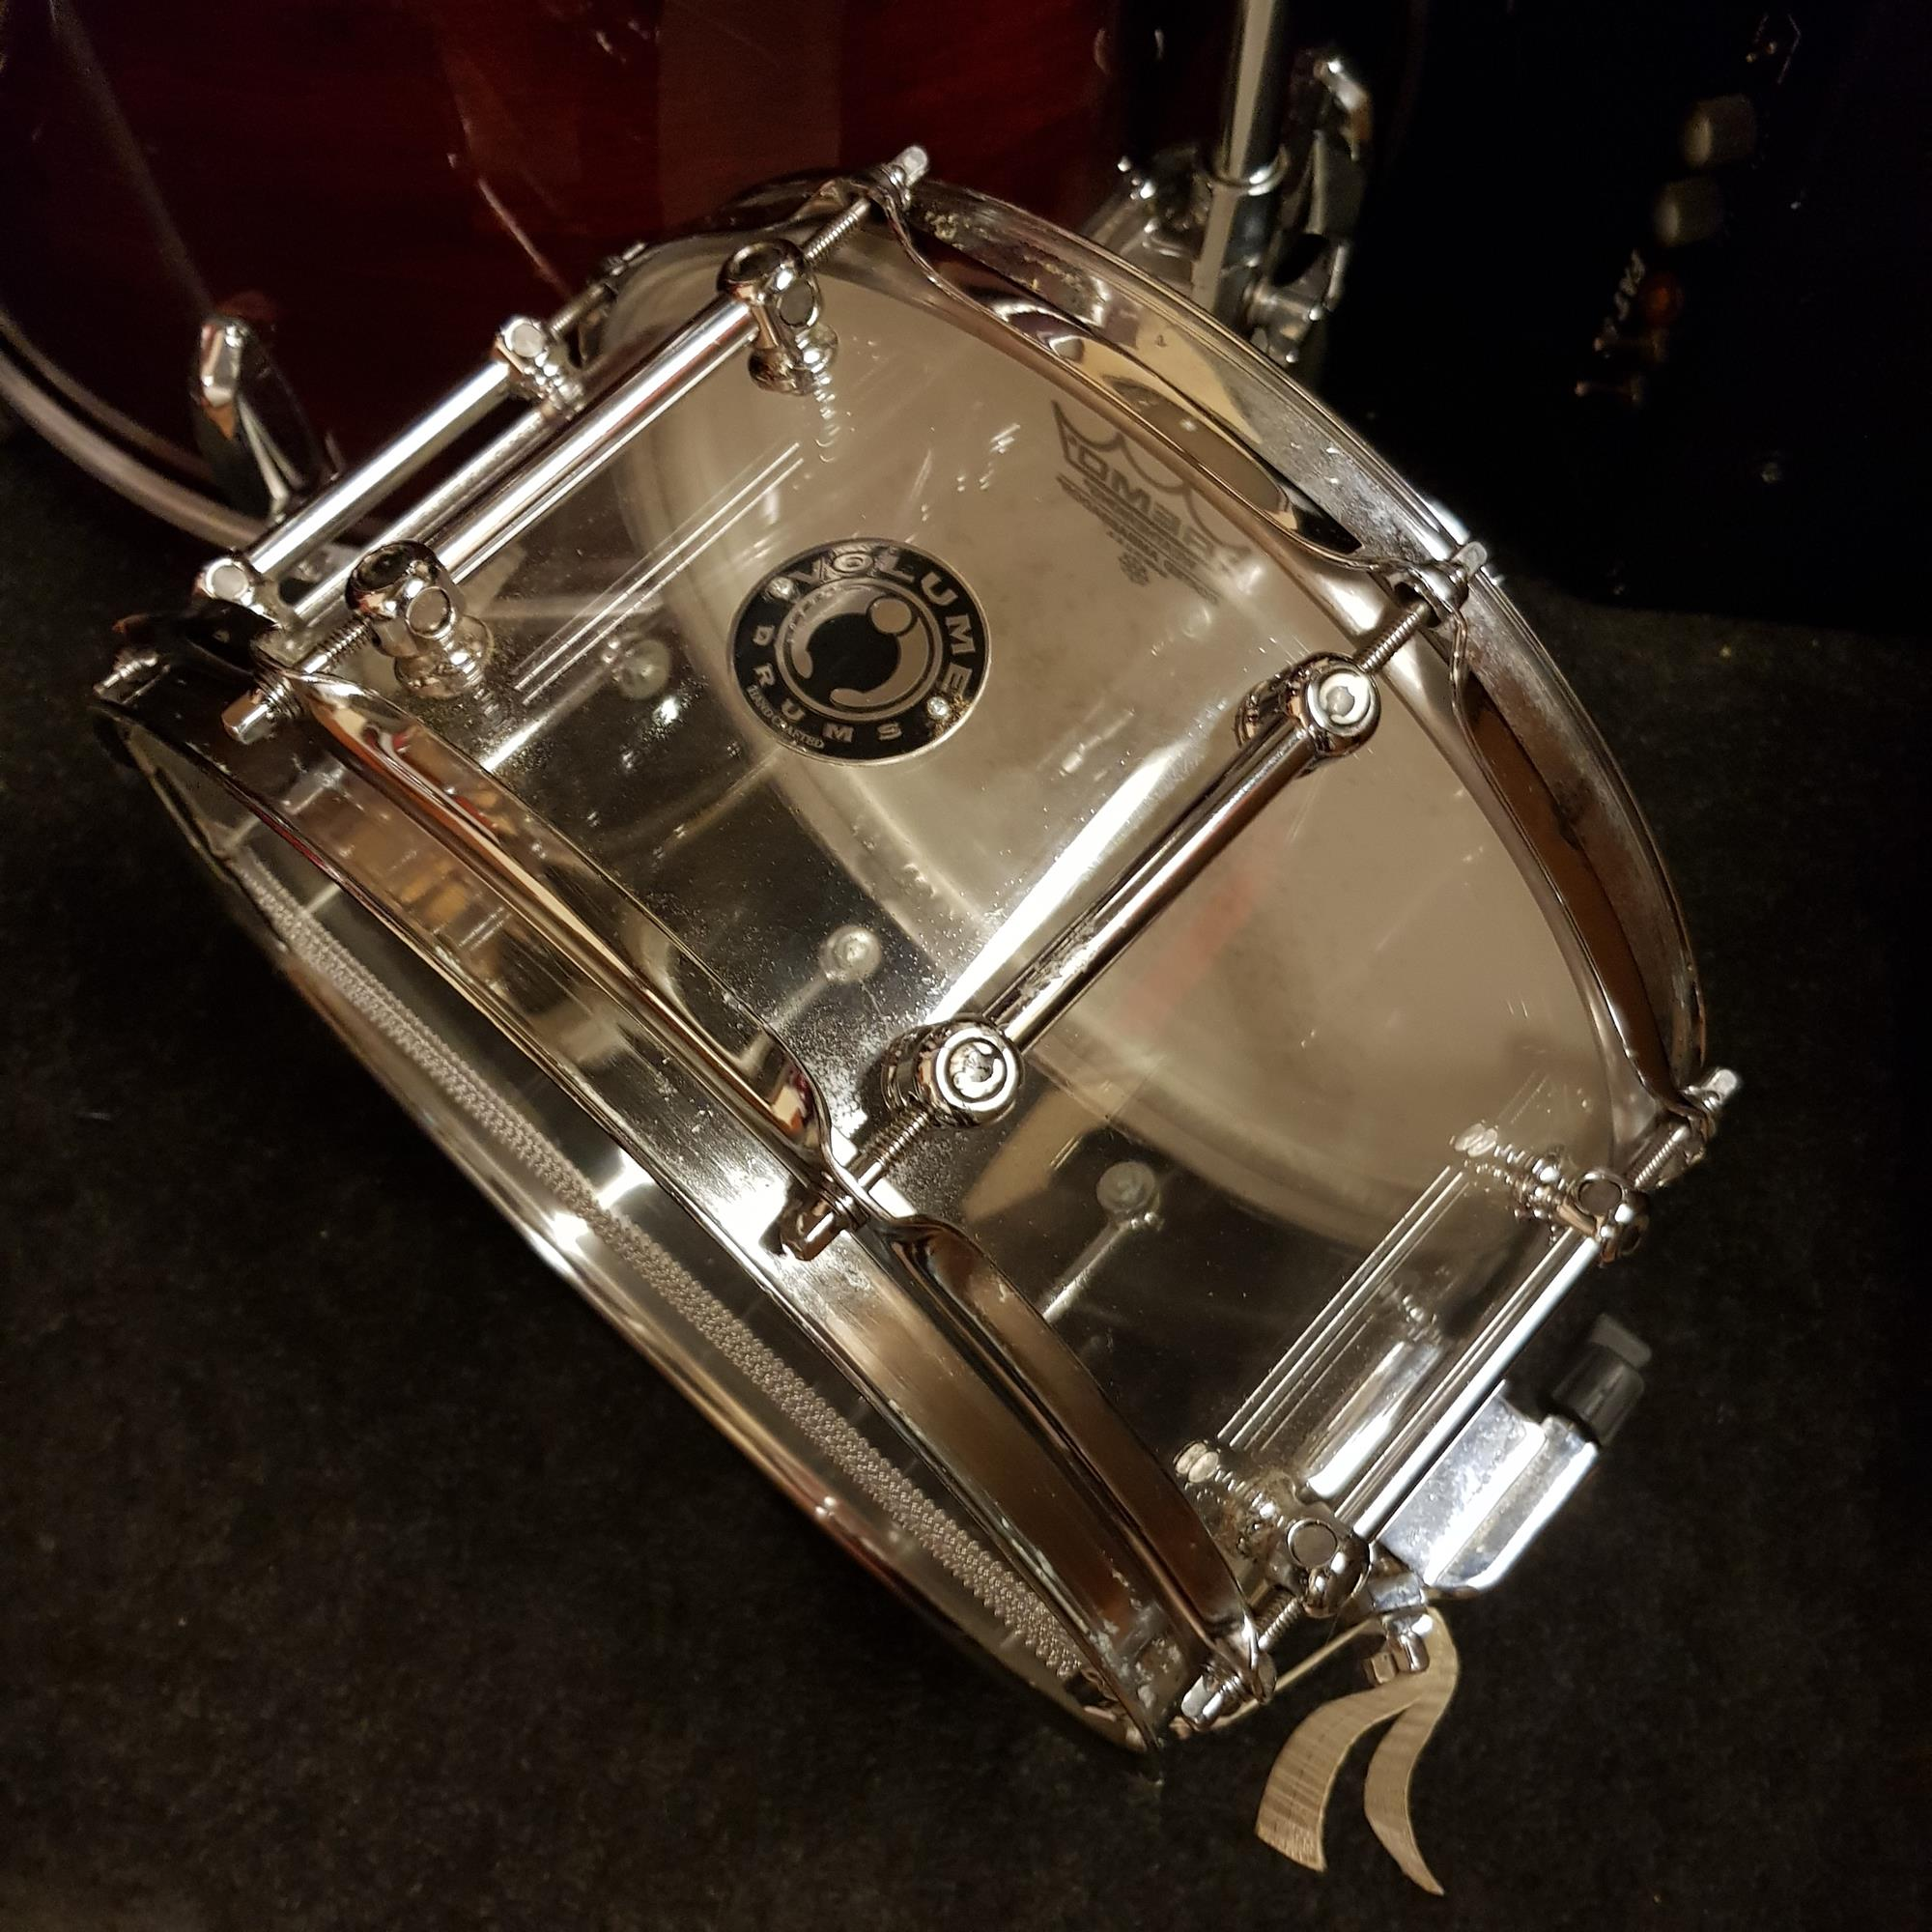 VOLUME-LIGHT-DRUM-ACRYLIC-SNARE-13-VISTALITE-MADE-IN-ITALY-sku-1601650944340